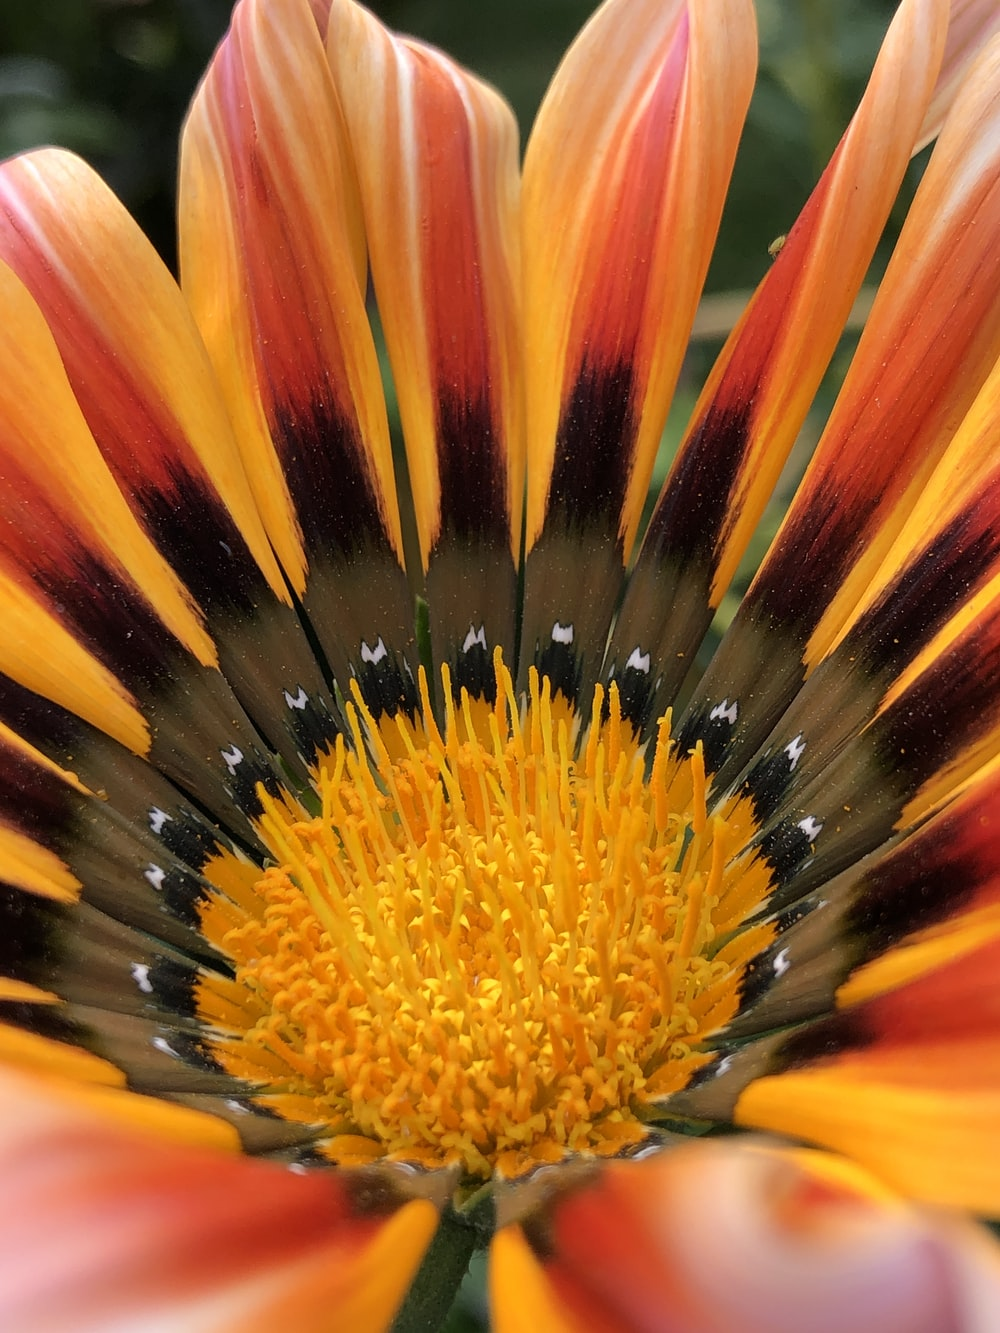 yellow and red flower in macro lens photography